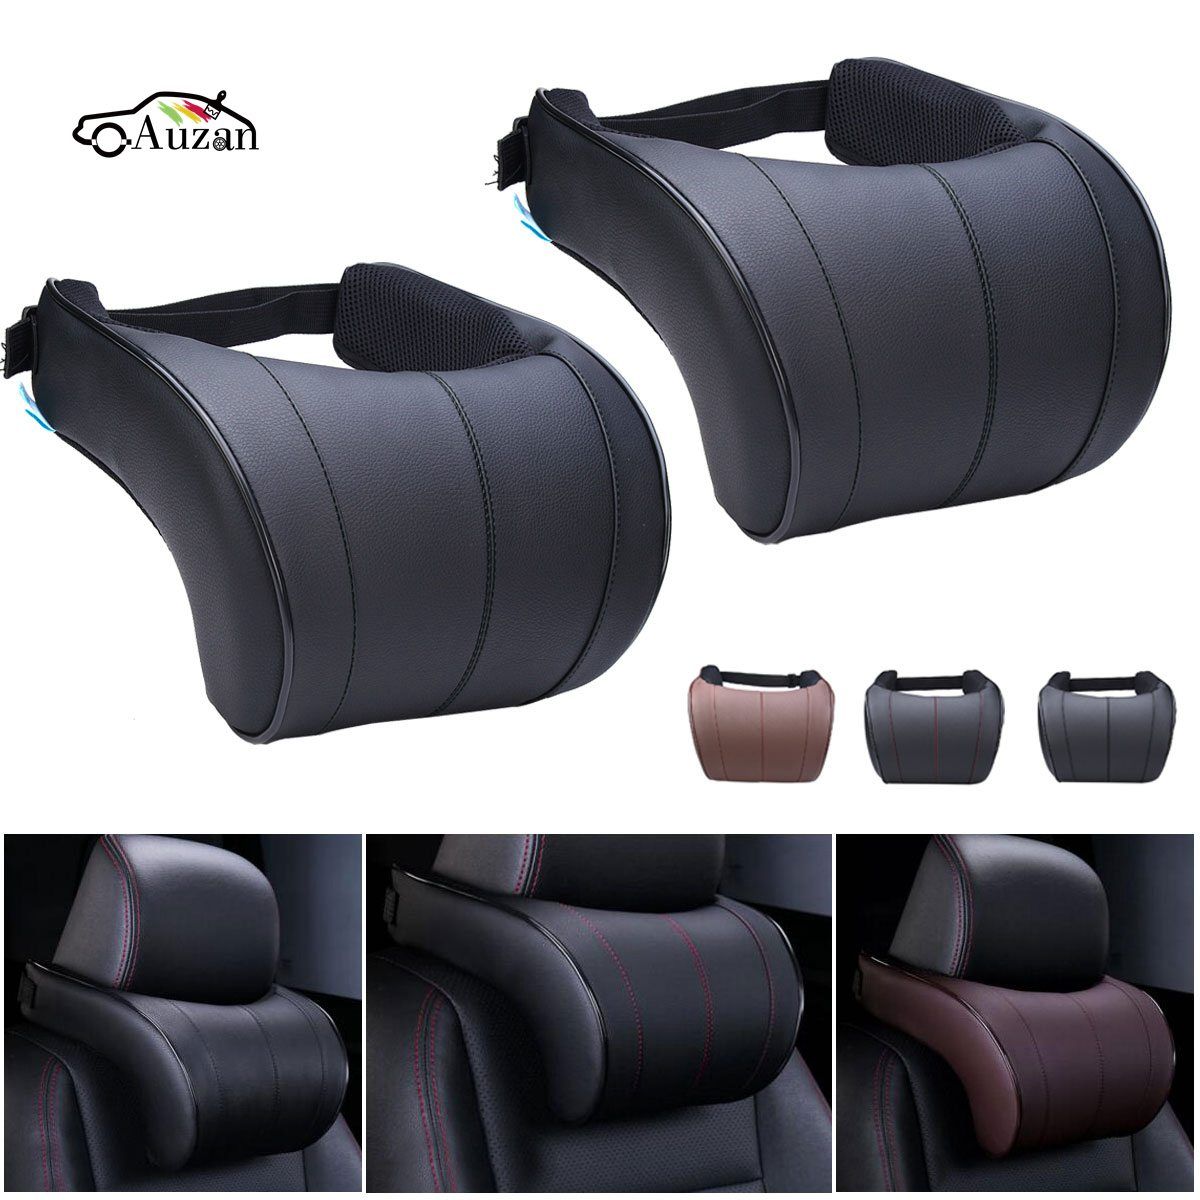 1pcs pu leather auto car neck pillow memory foam pillows neck rest seat headrest cushion pad